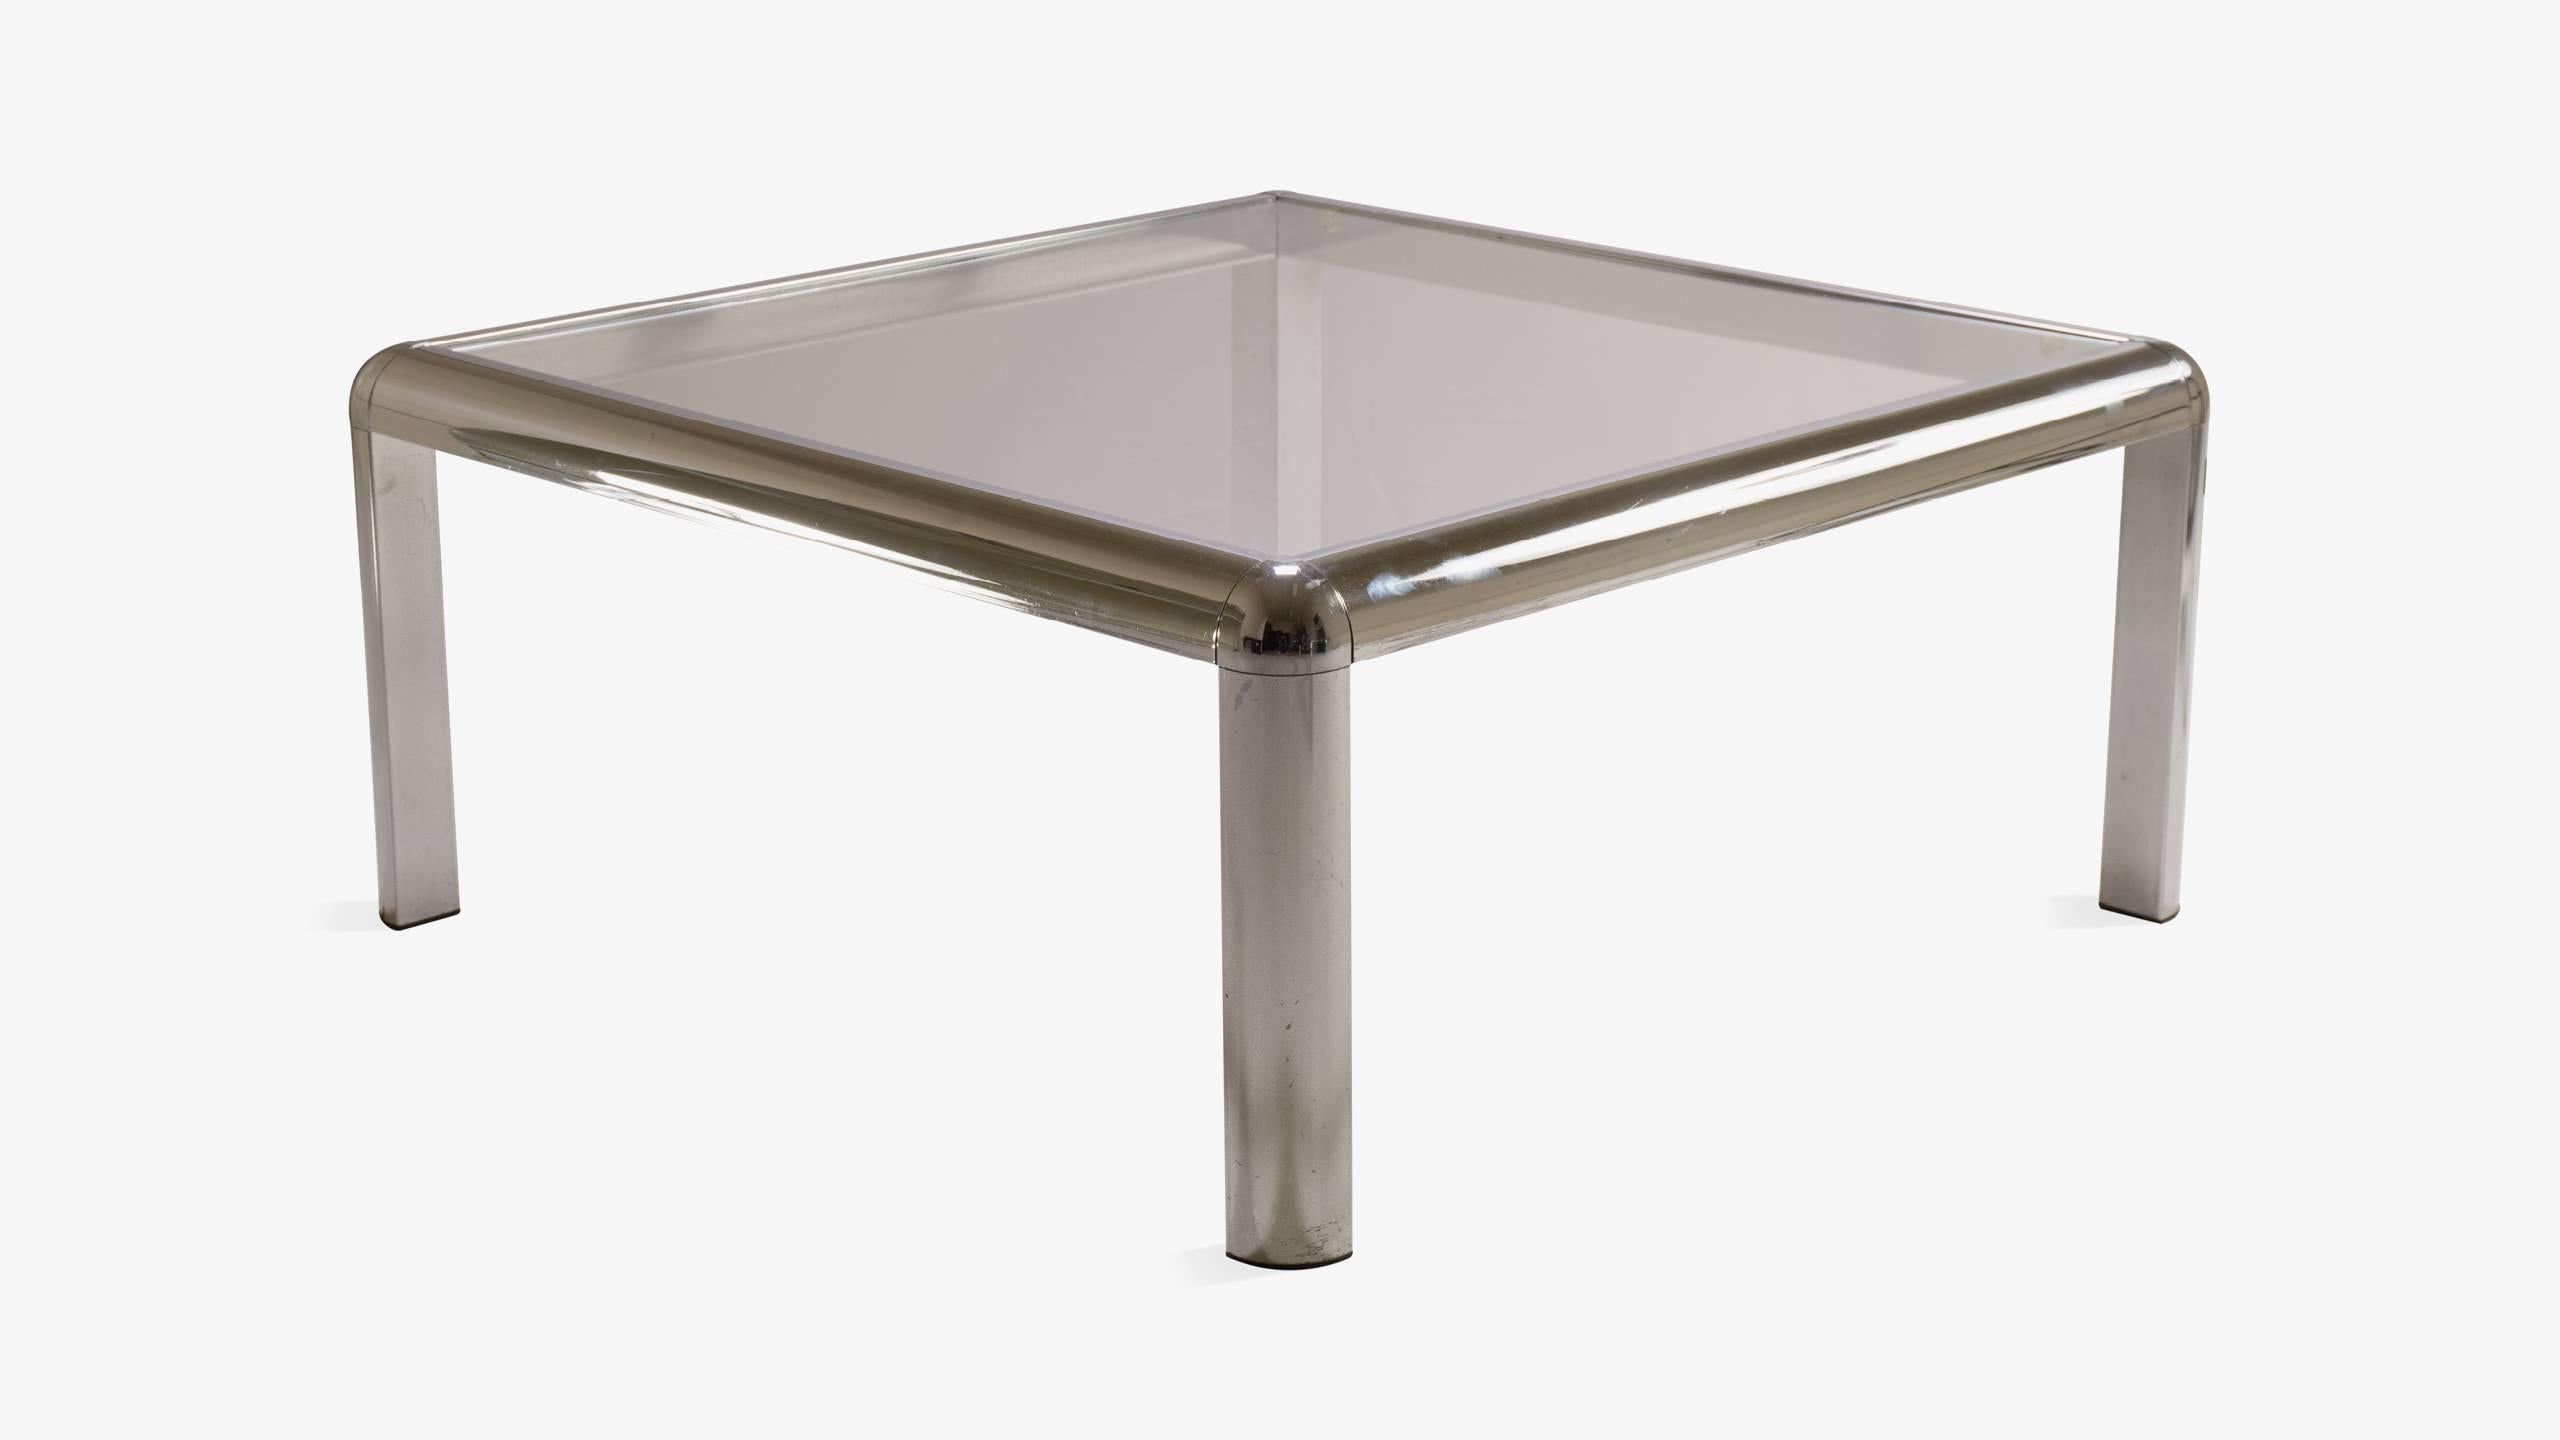 Midcentury Square Chrome Cocktail Table With Rounded Frame 2